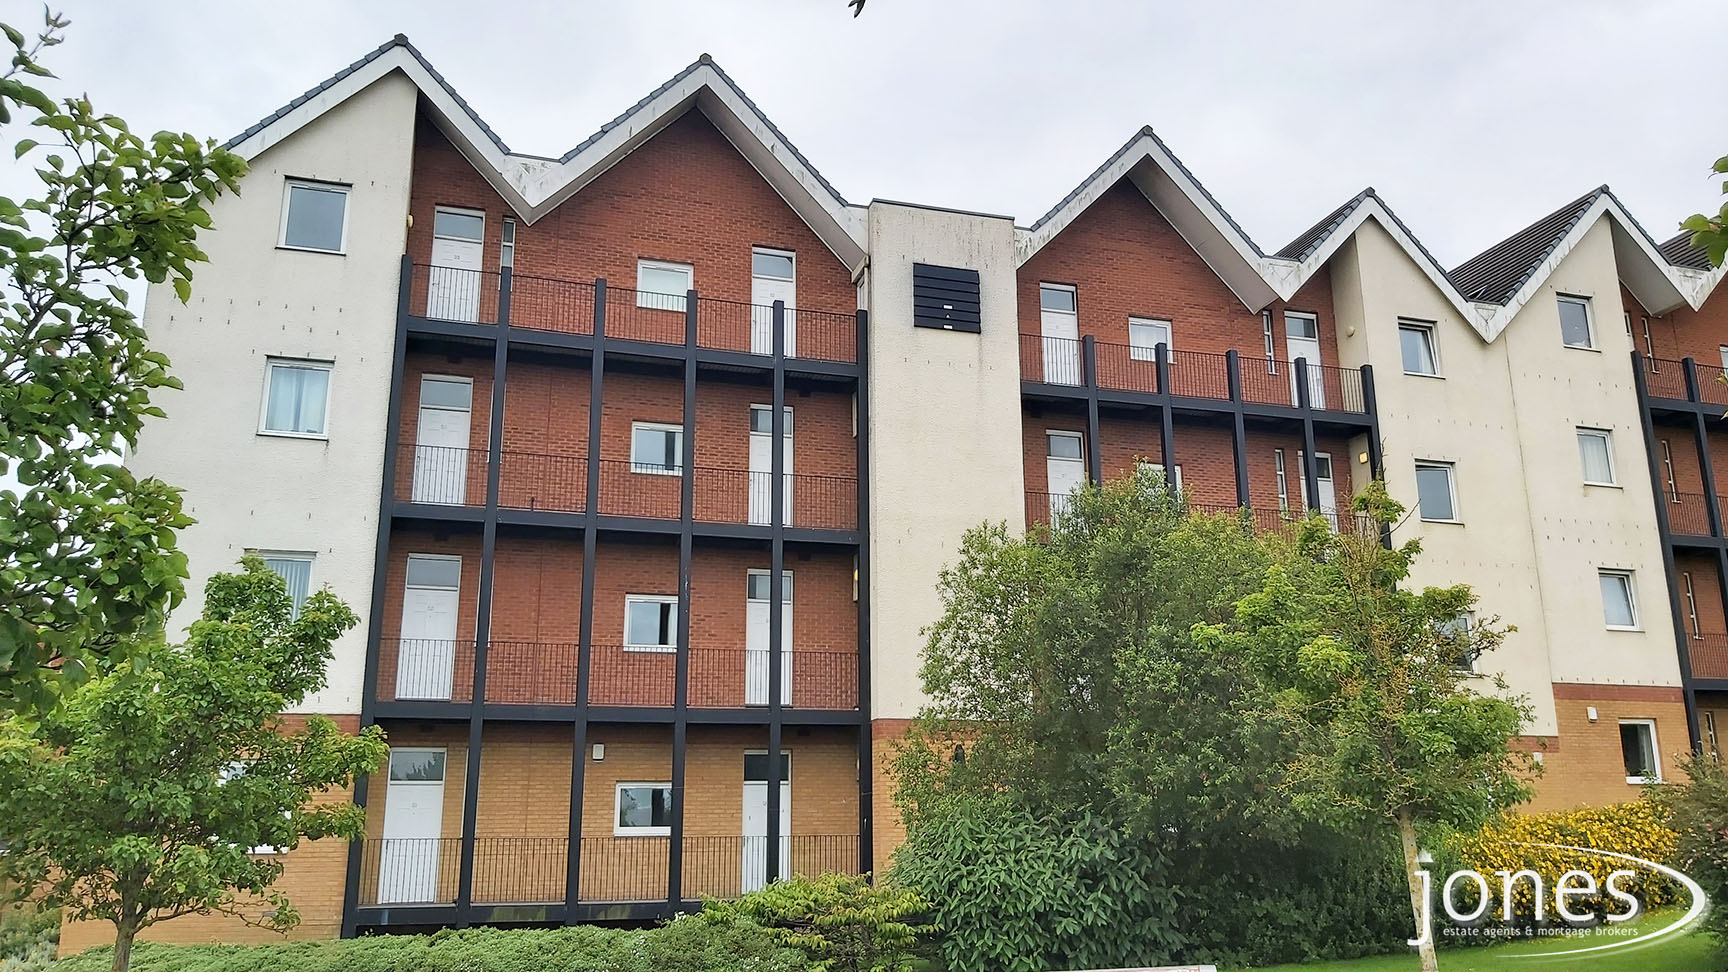 Home for Sale Let - Photo 01 Willow Sage Court, Stockton on Tees, TS18 3UQ